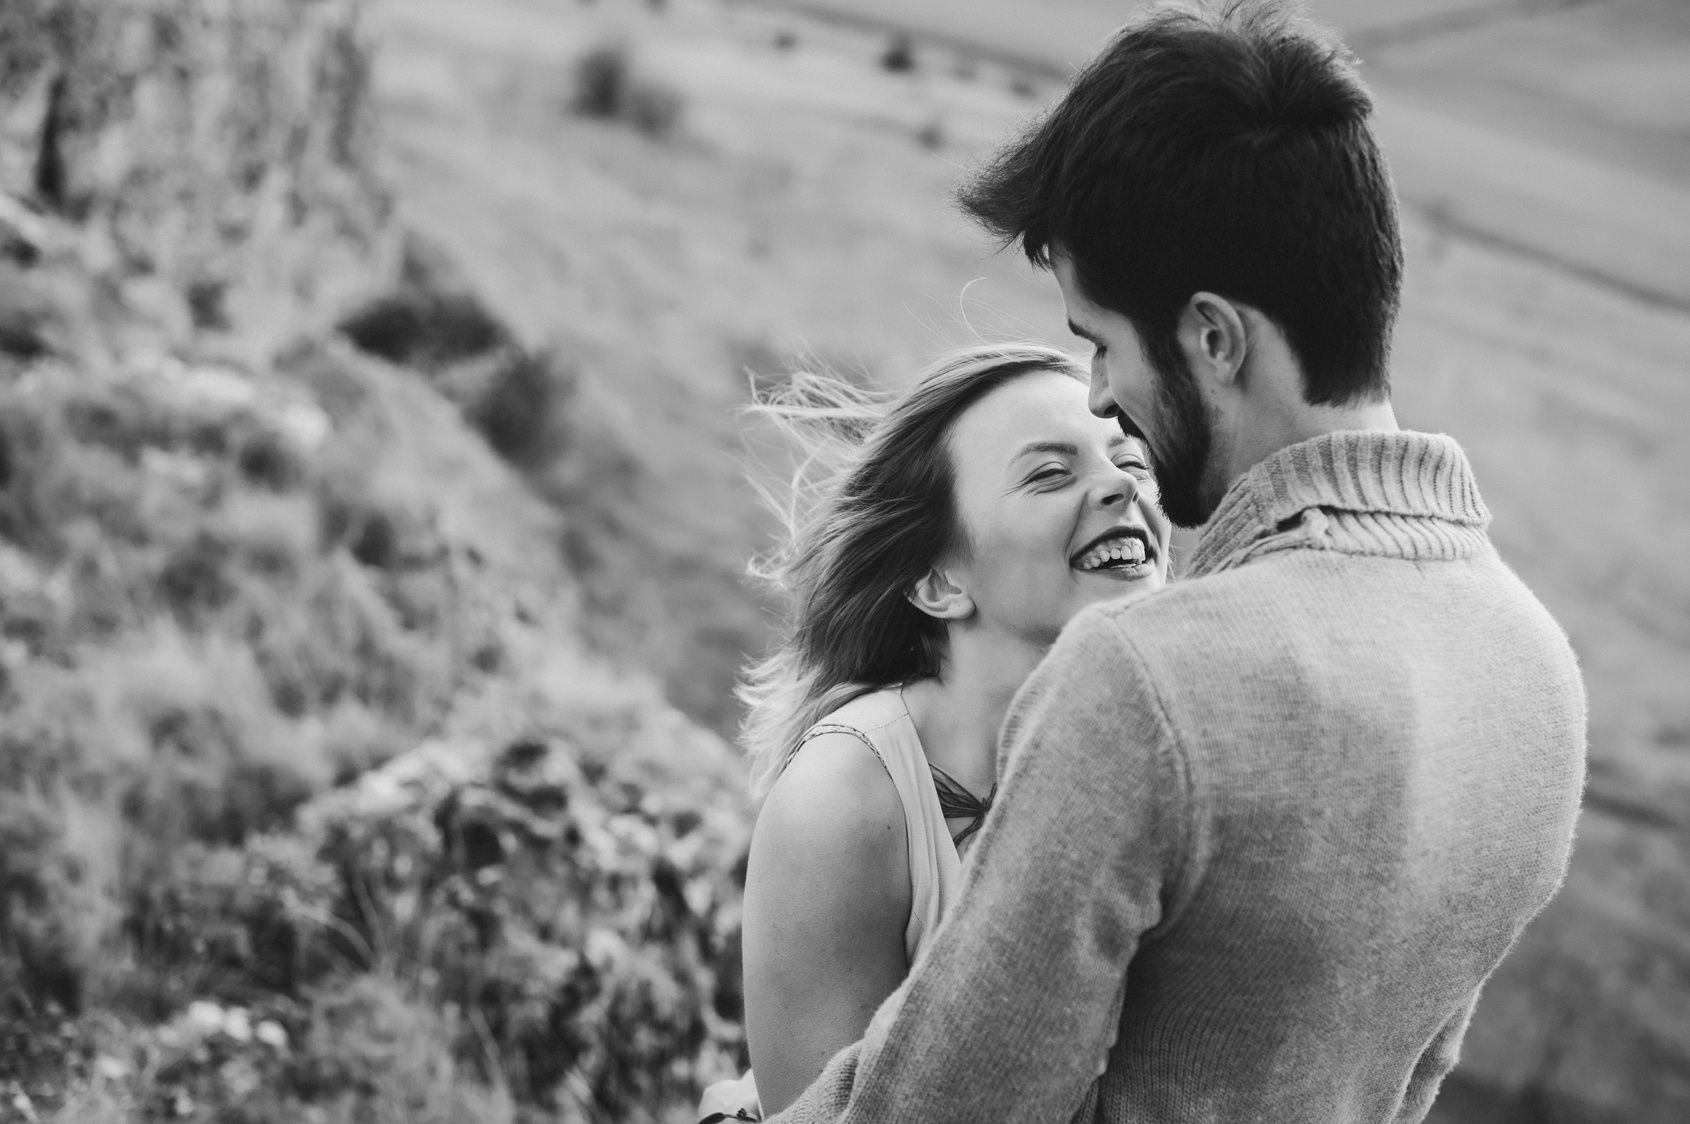 Having emotional intimacy in your relationship is vital; if you feel it's lacking in your relationship, here are some ways to deepen the connection...